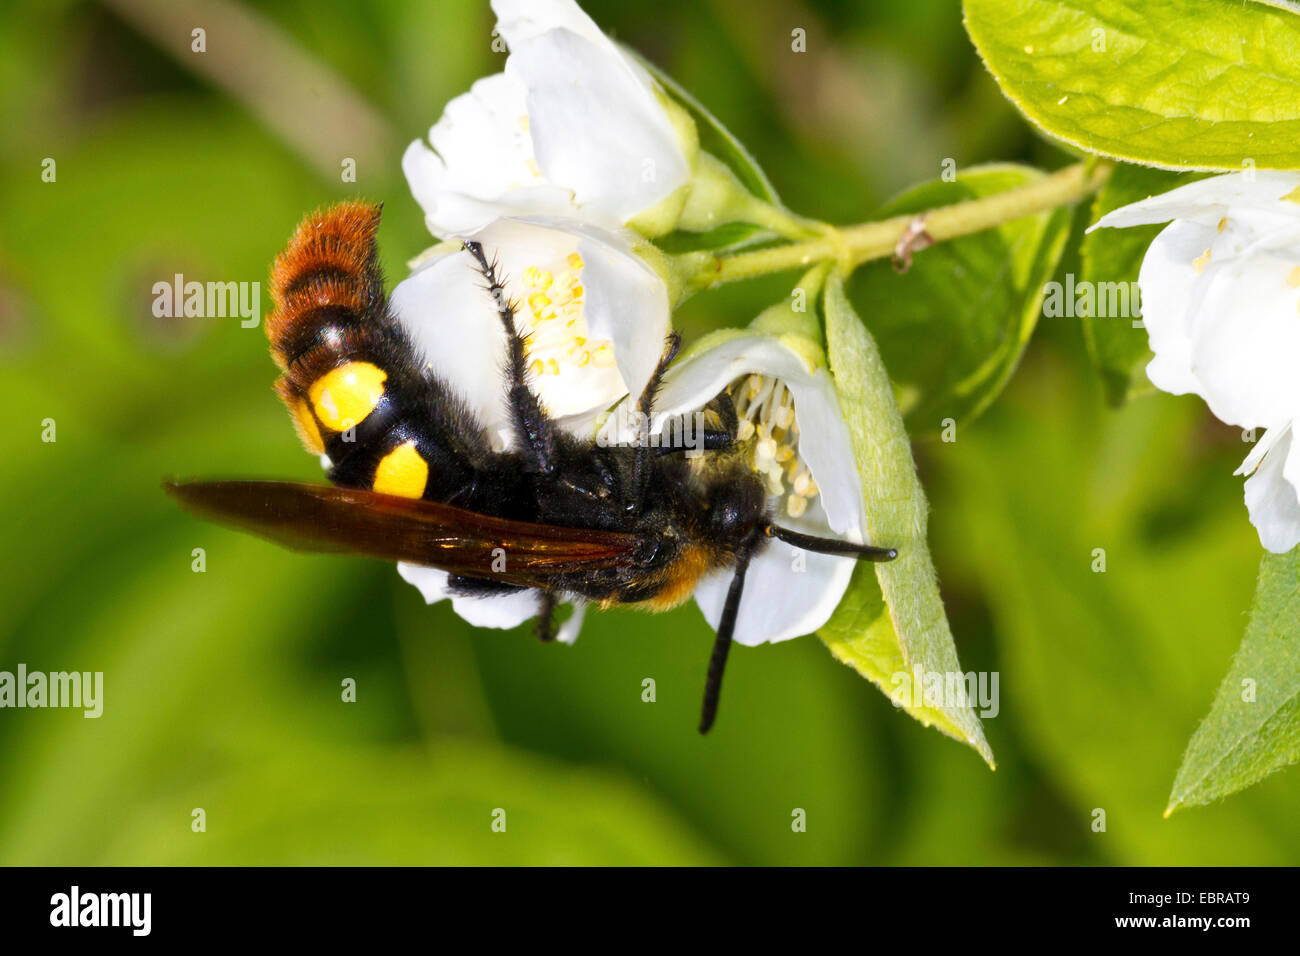 scolid wasp on a white flower, Croatia, Istria - Stock Image